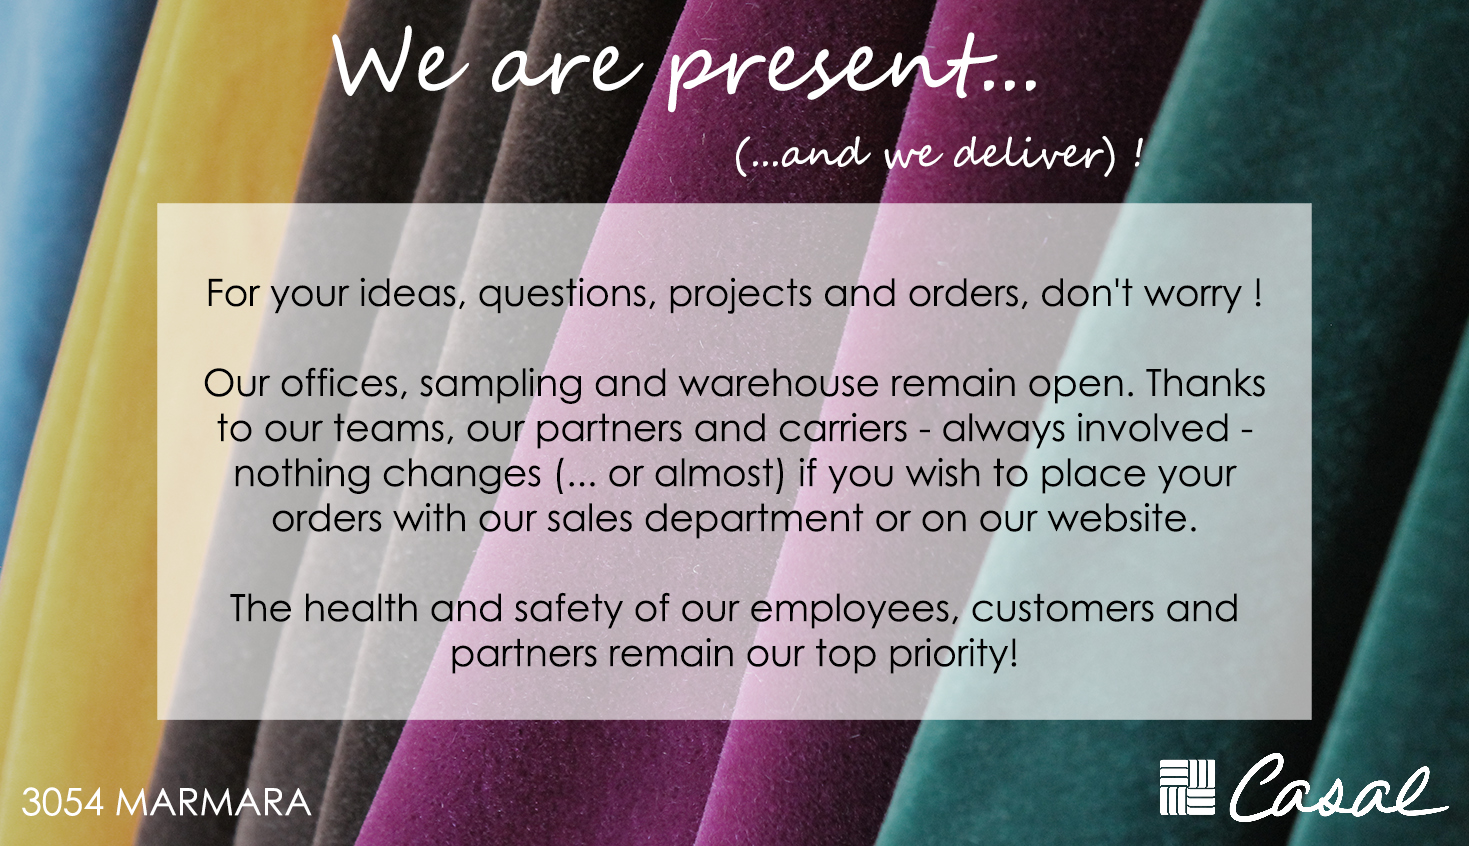 We are present (and we deliver) !